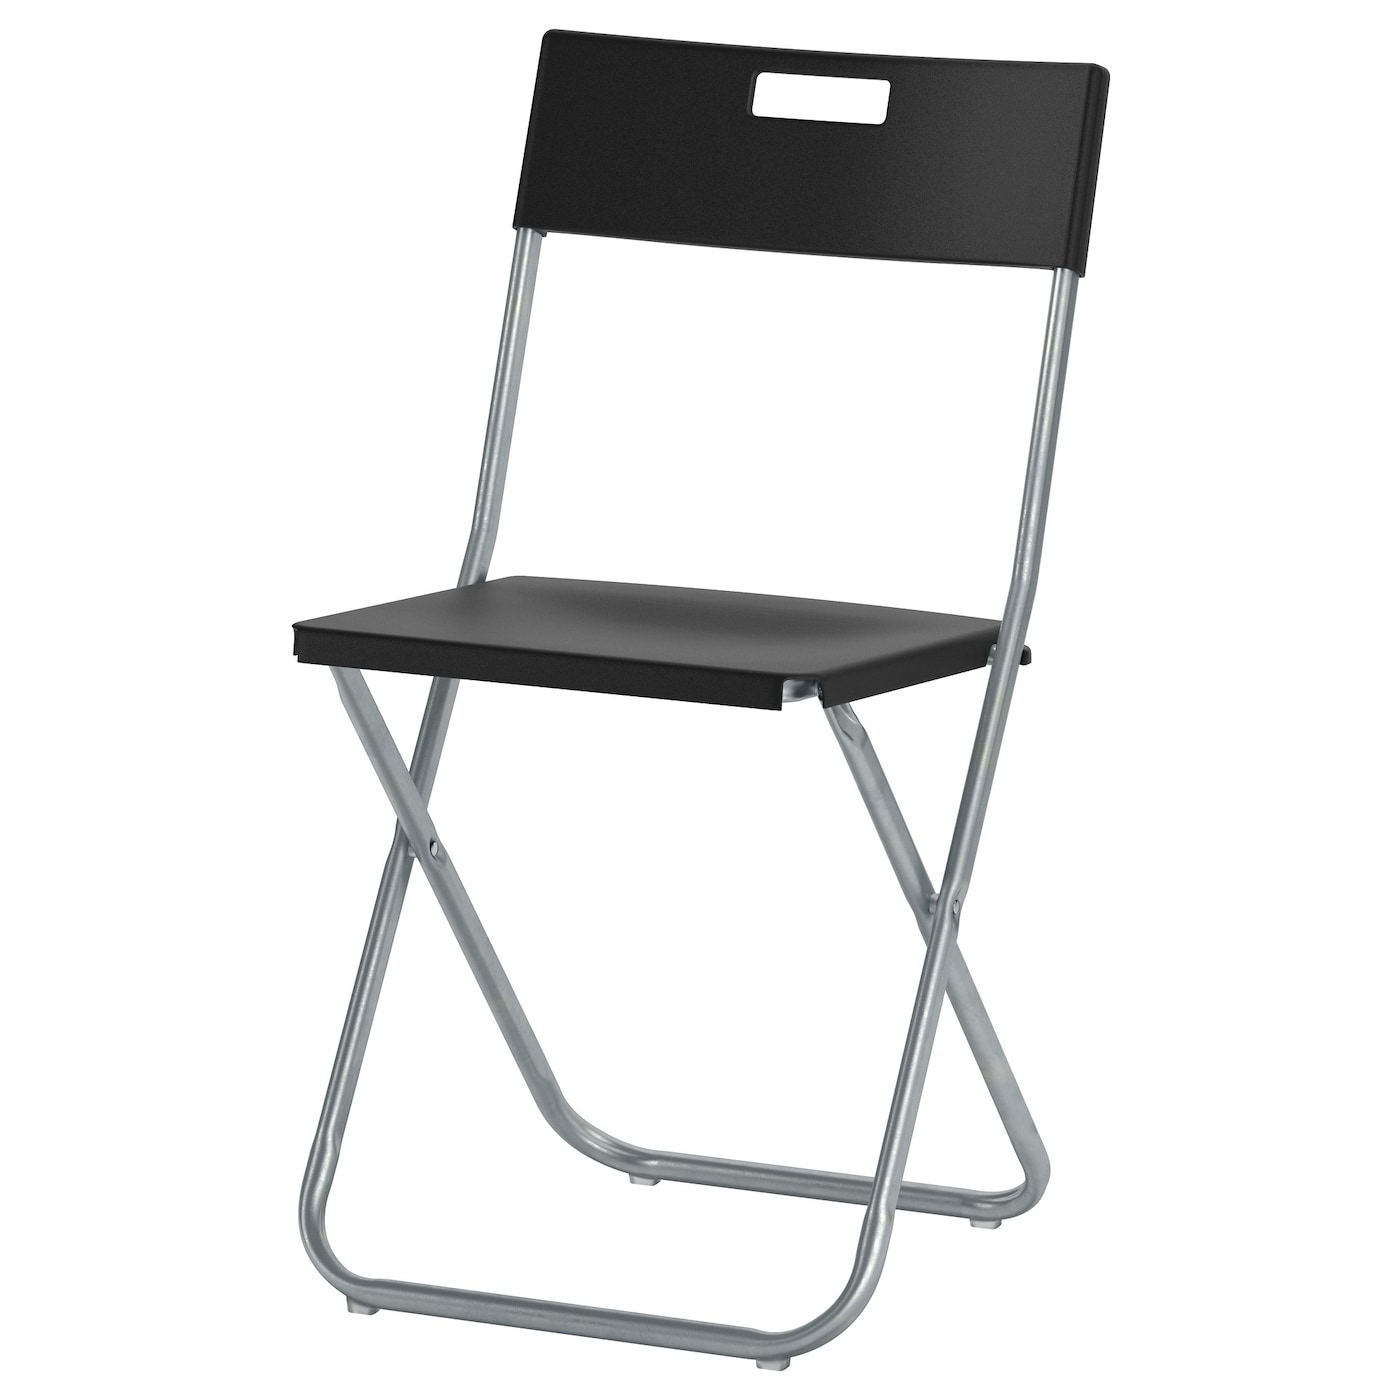 gunde-folding-chair-black__0239247_pe378636_s5